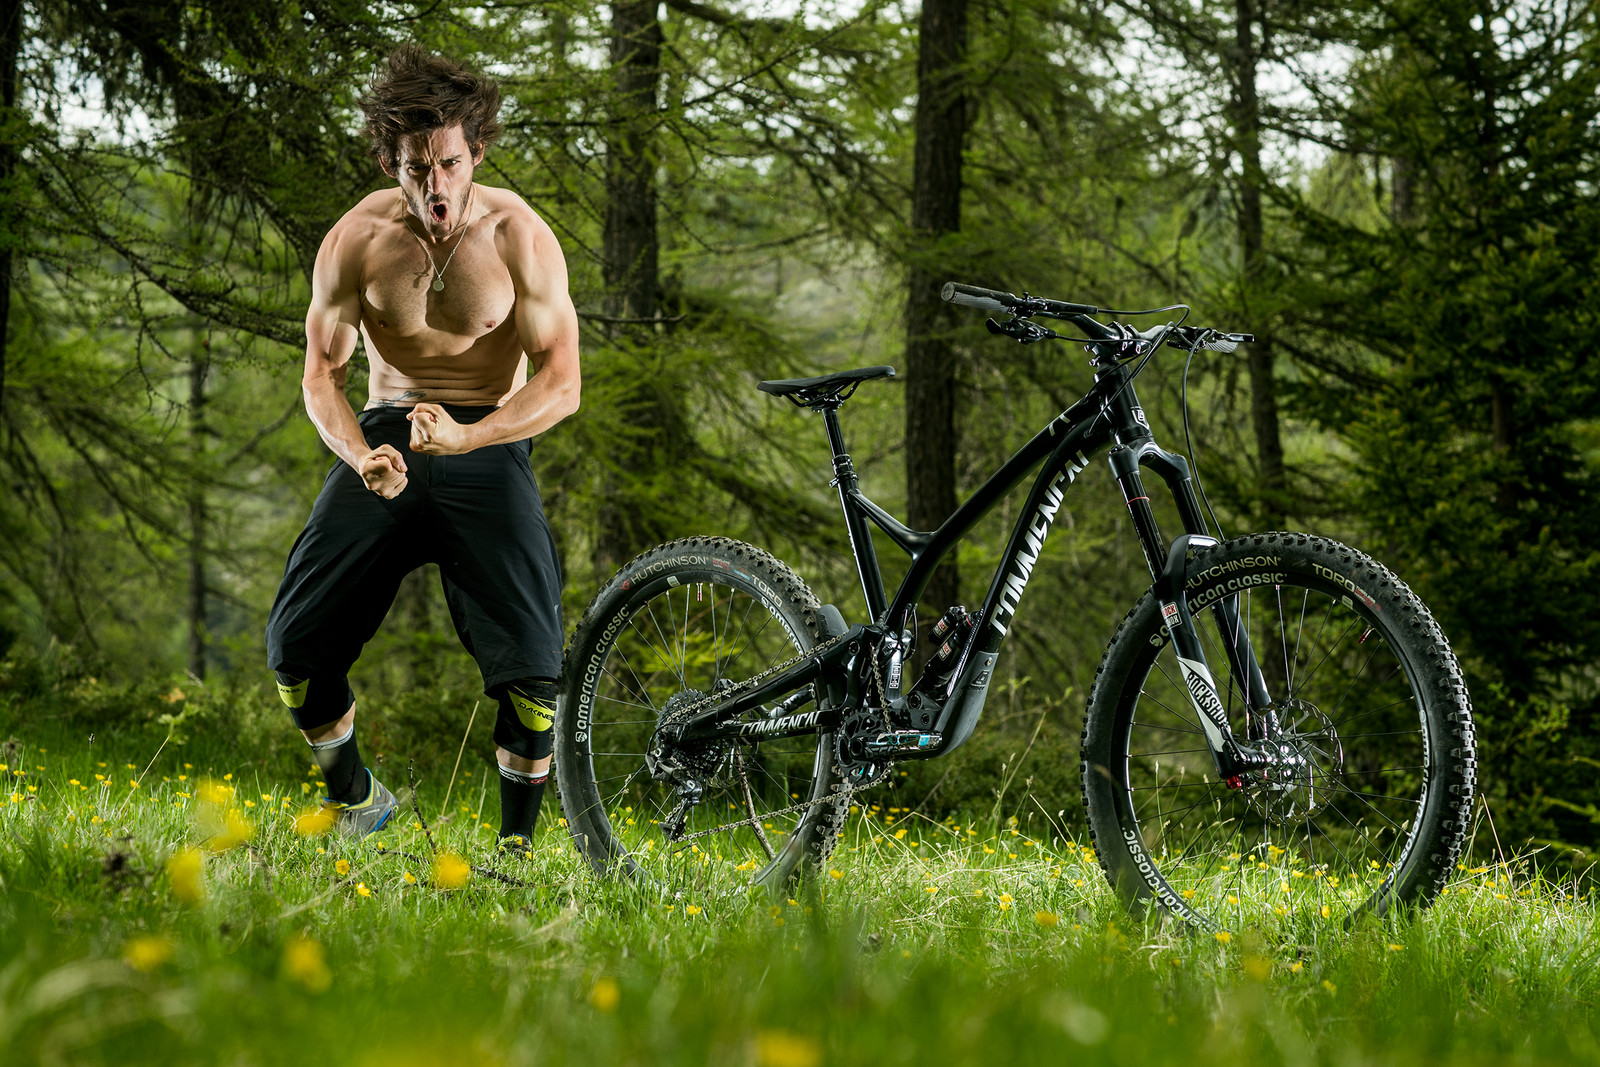 Introducing the Commencal Supreme SX